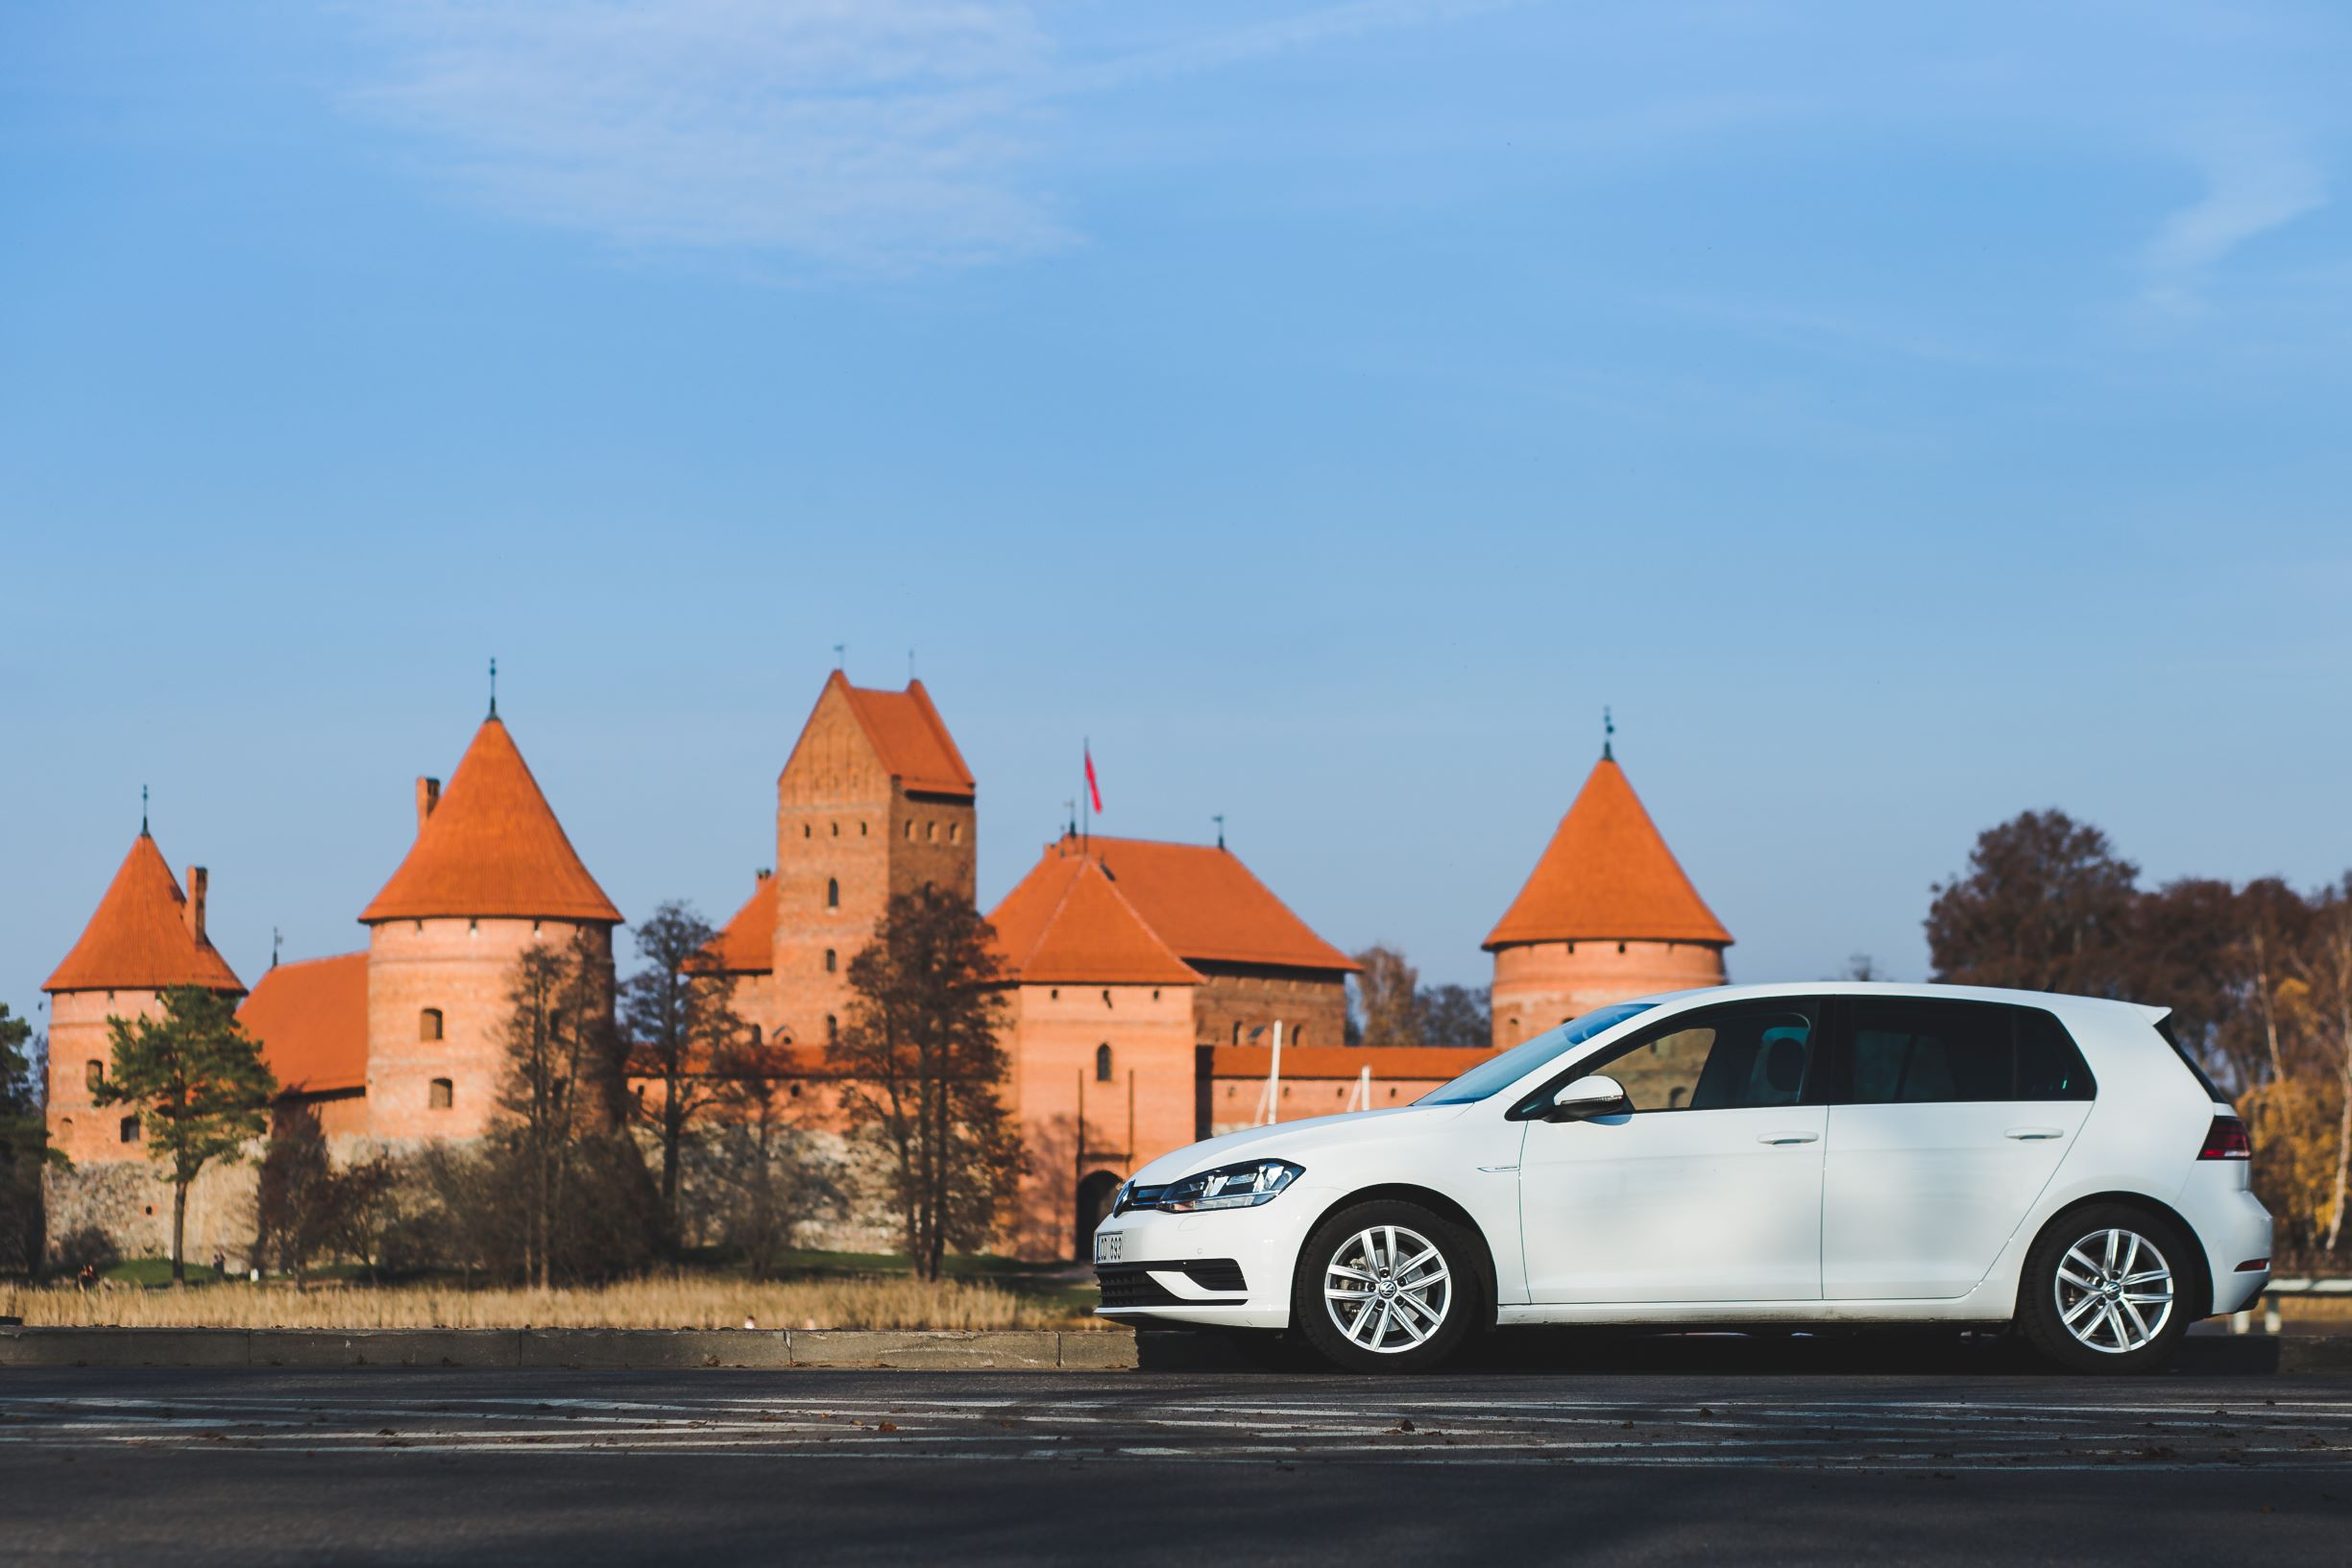 A car from Autocom Car Rental in front of Trakai castle